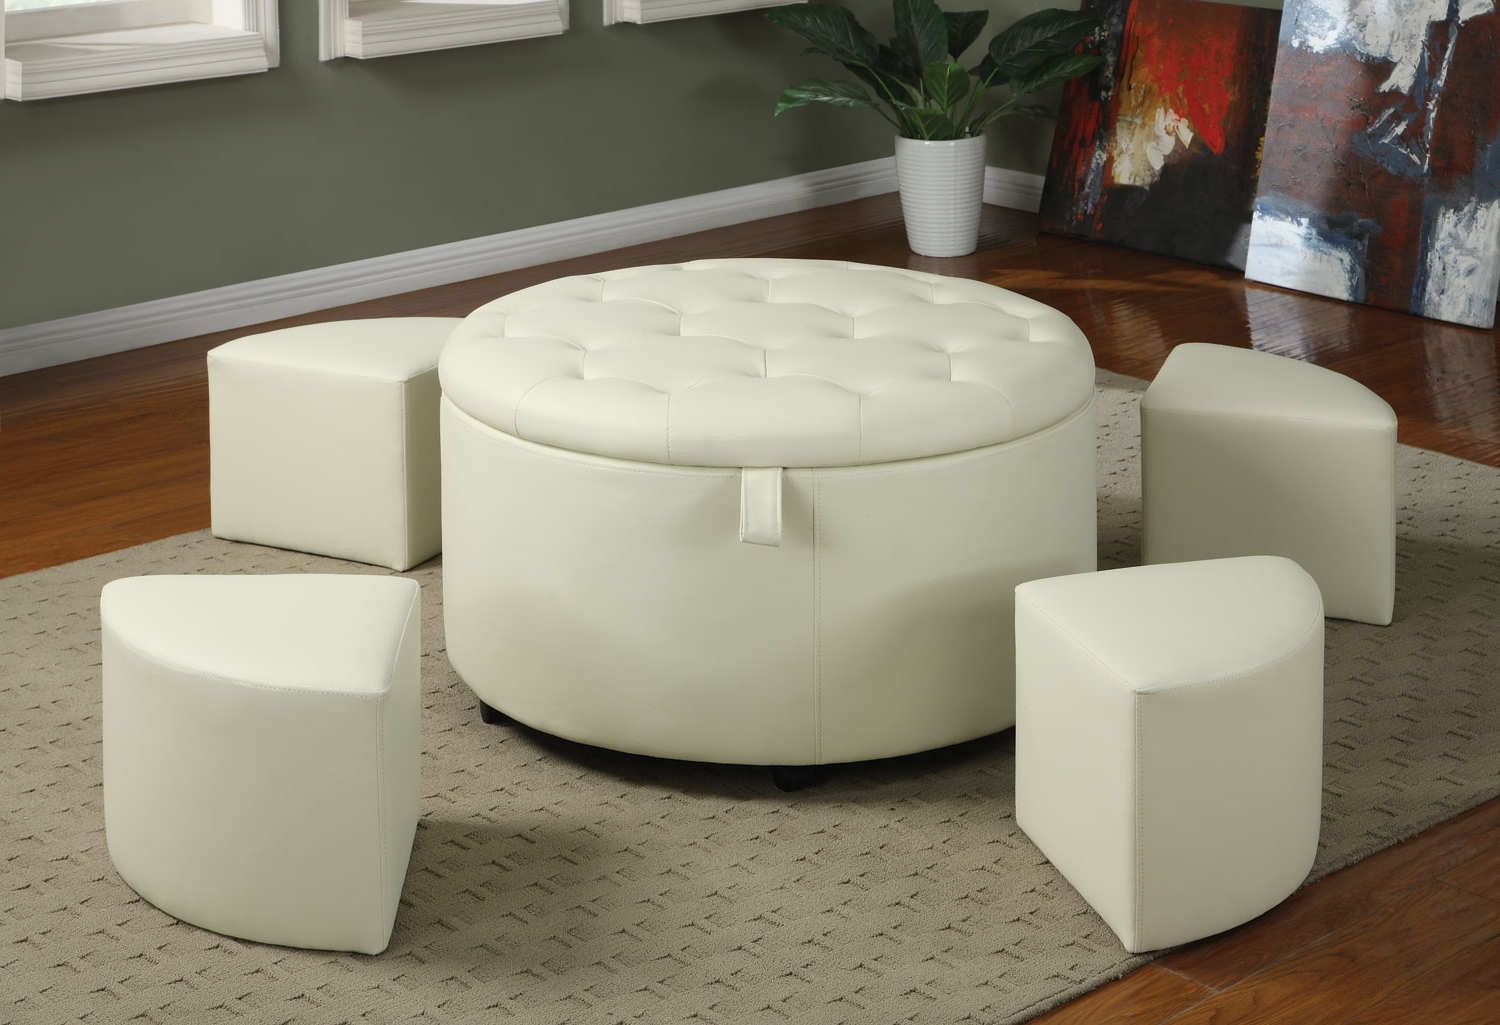 2017 Round Button Tufted Coffee Tables Pertaining To Saving Small Spaces Living Room Design Using White Round Leather (Gallery 11 of 20)